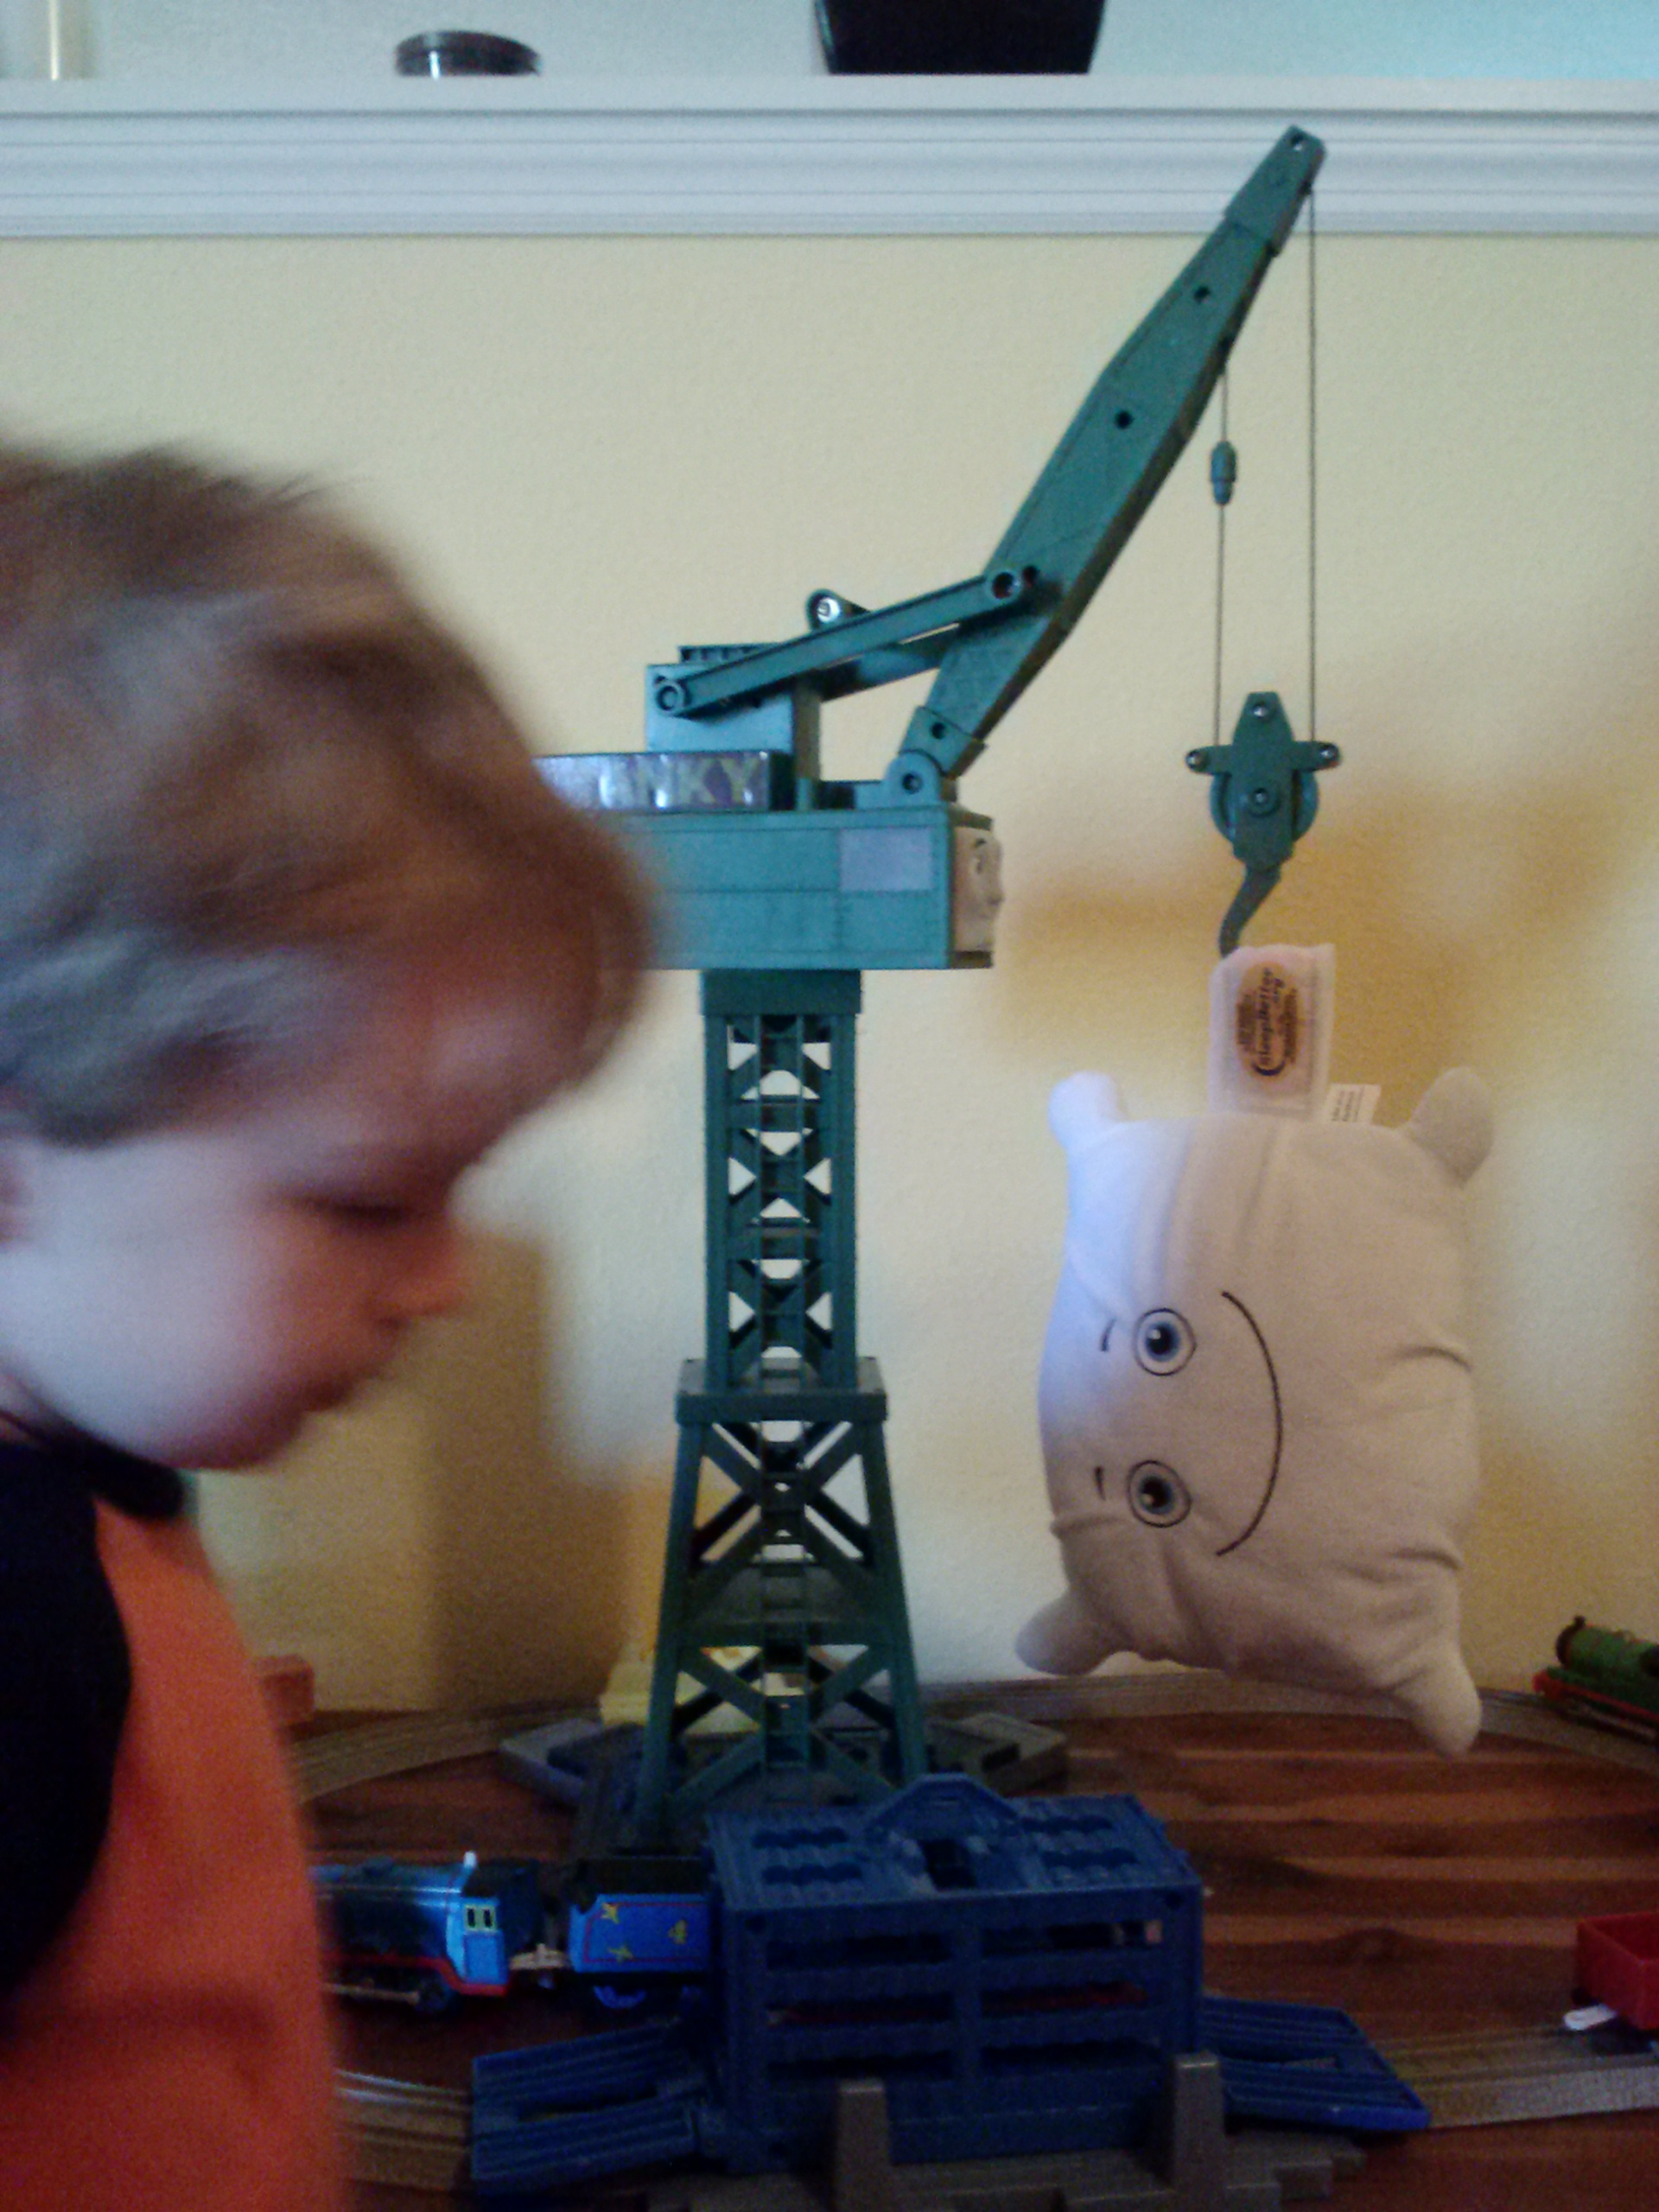 Getting a lift from Cranky the Crane